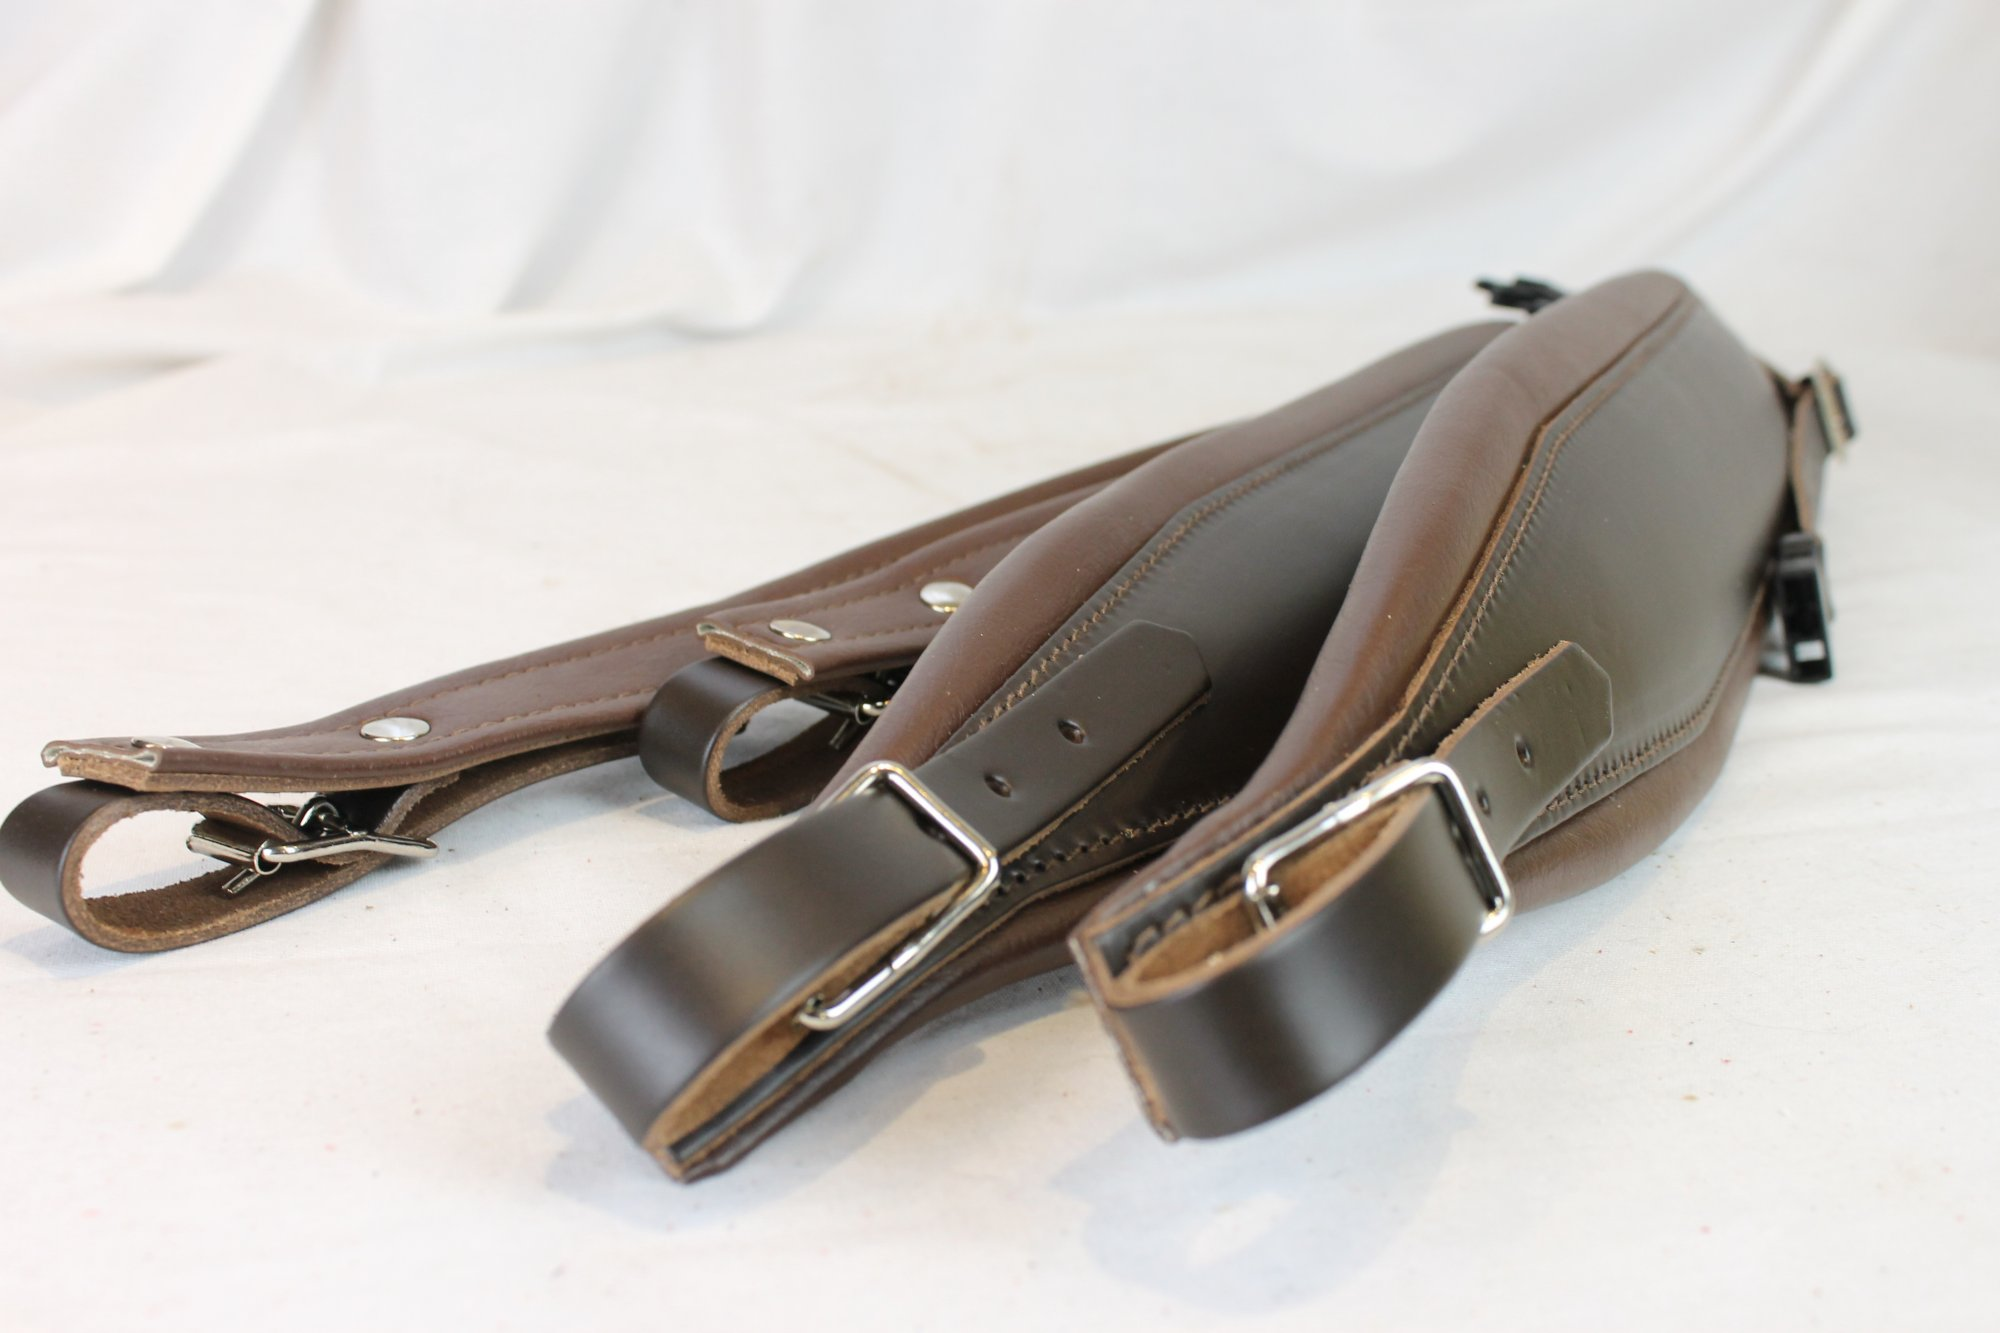 New Brown Leather Fuselli Accordion Shoulder Straps With Back Straps Width (10cm / 3.9 inch) Length (105cm-123cm / 41.3-48.4 inch)